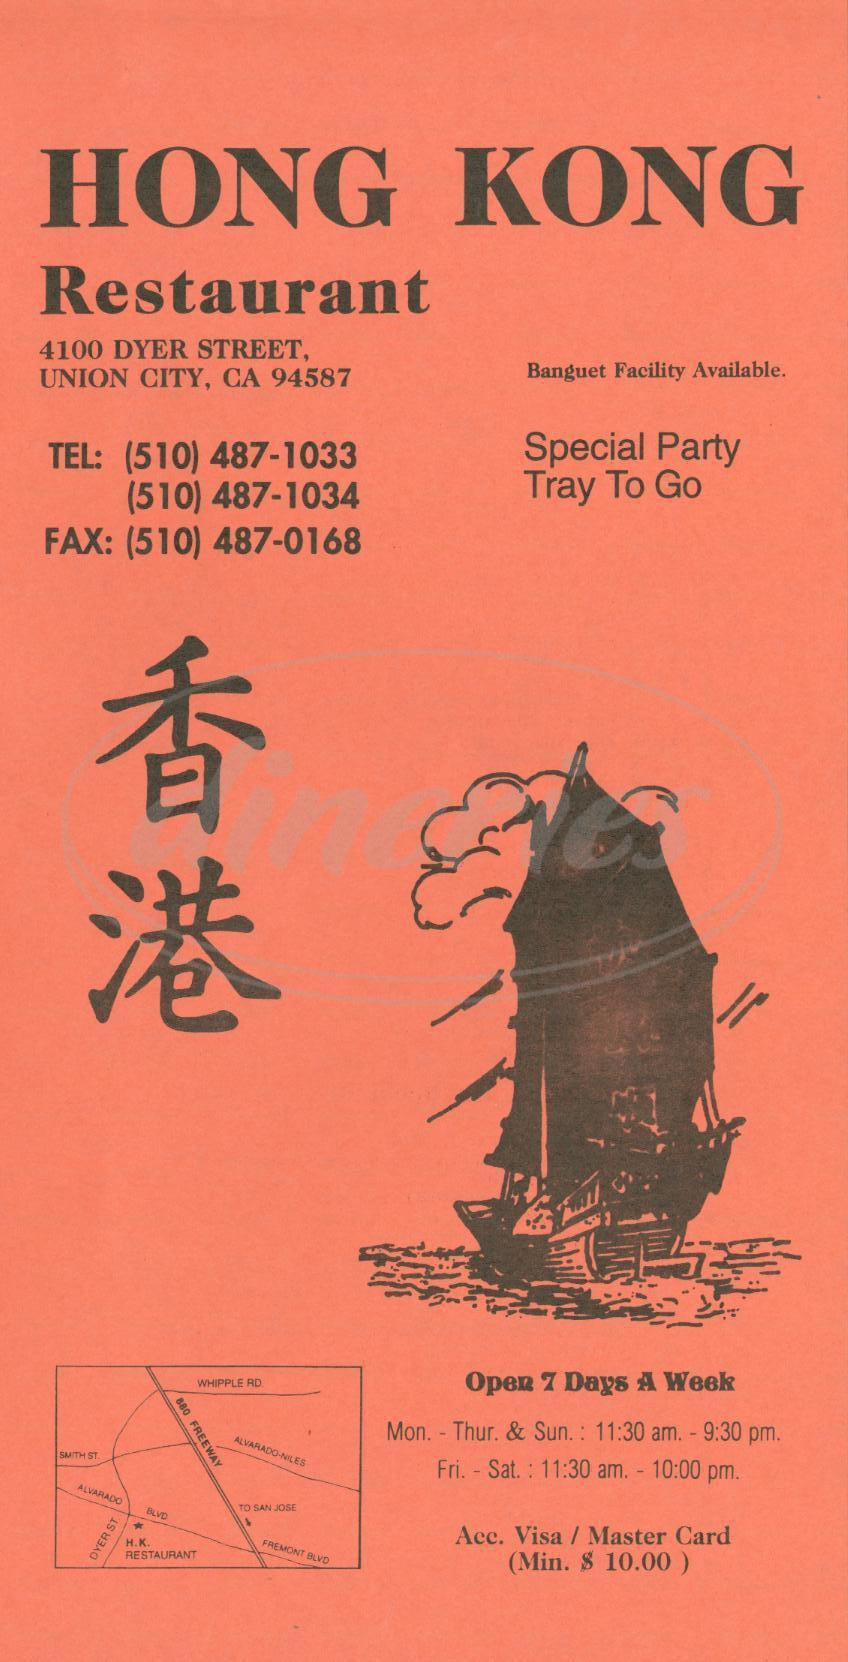 menu for Hong Kong Restaurant